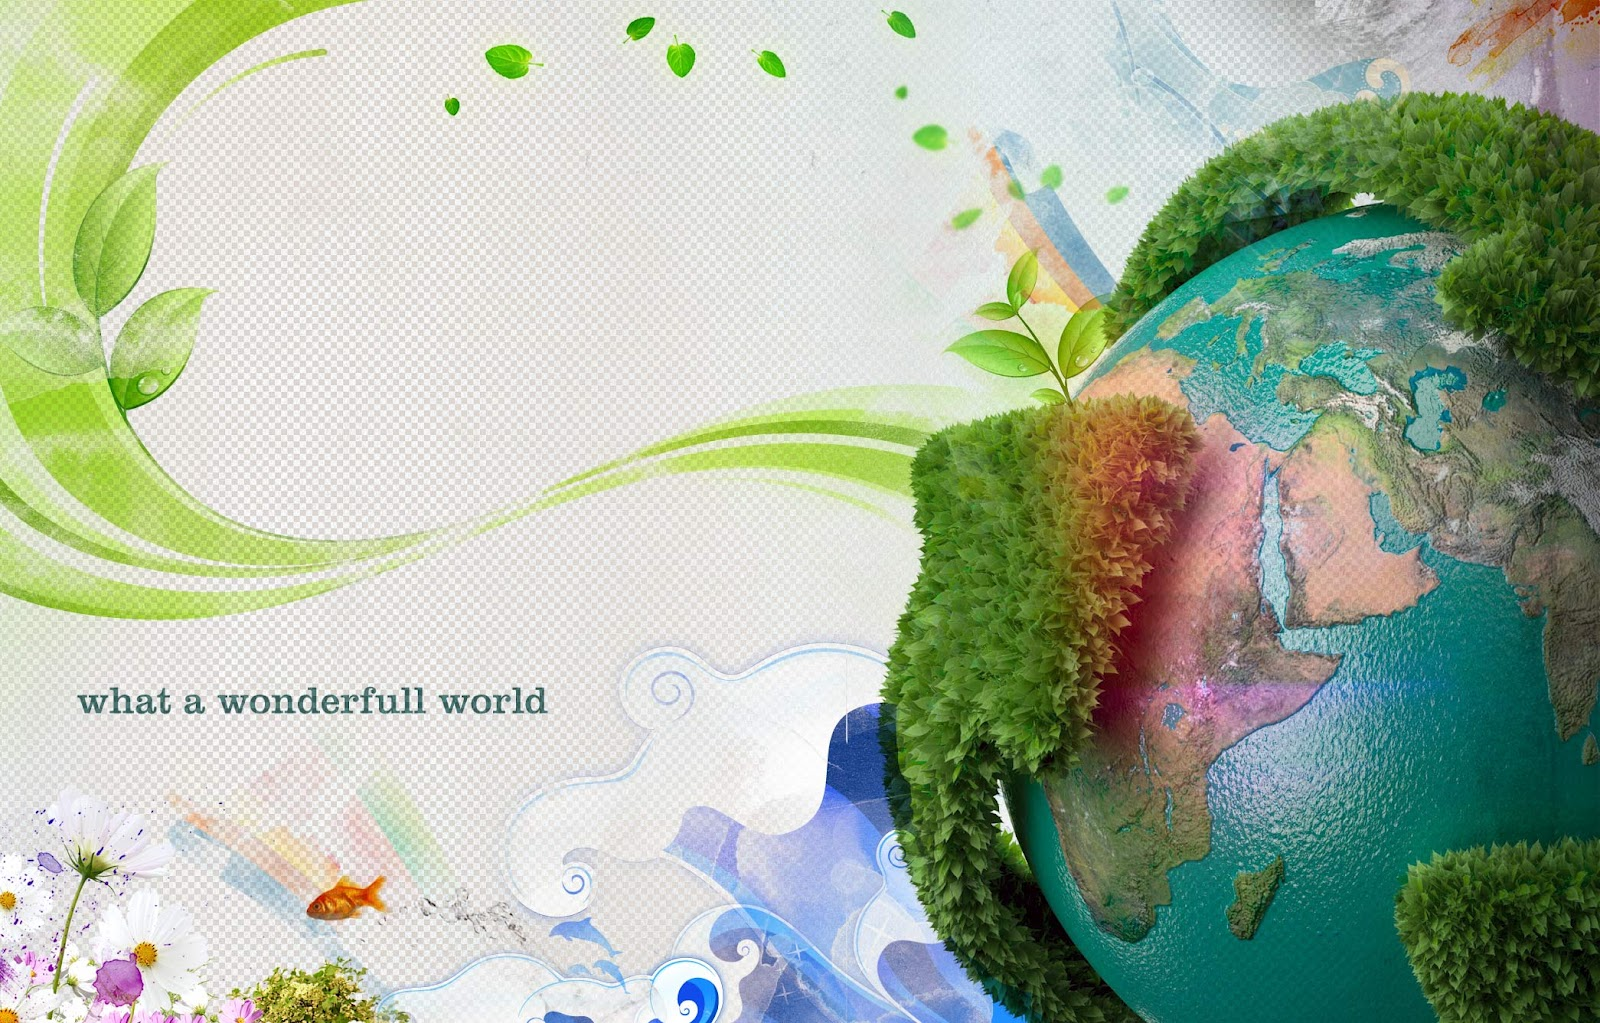 PicturesPool Earthday wallpapersQuotes 1600x1023